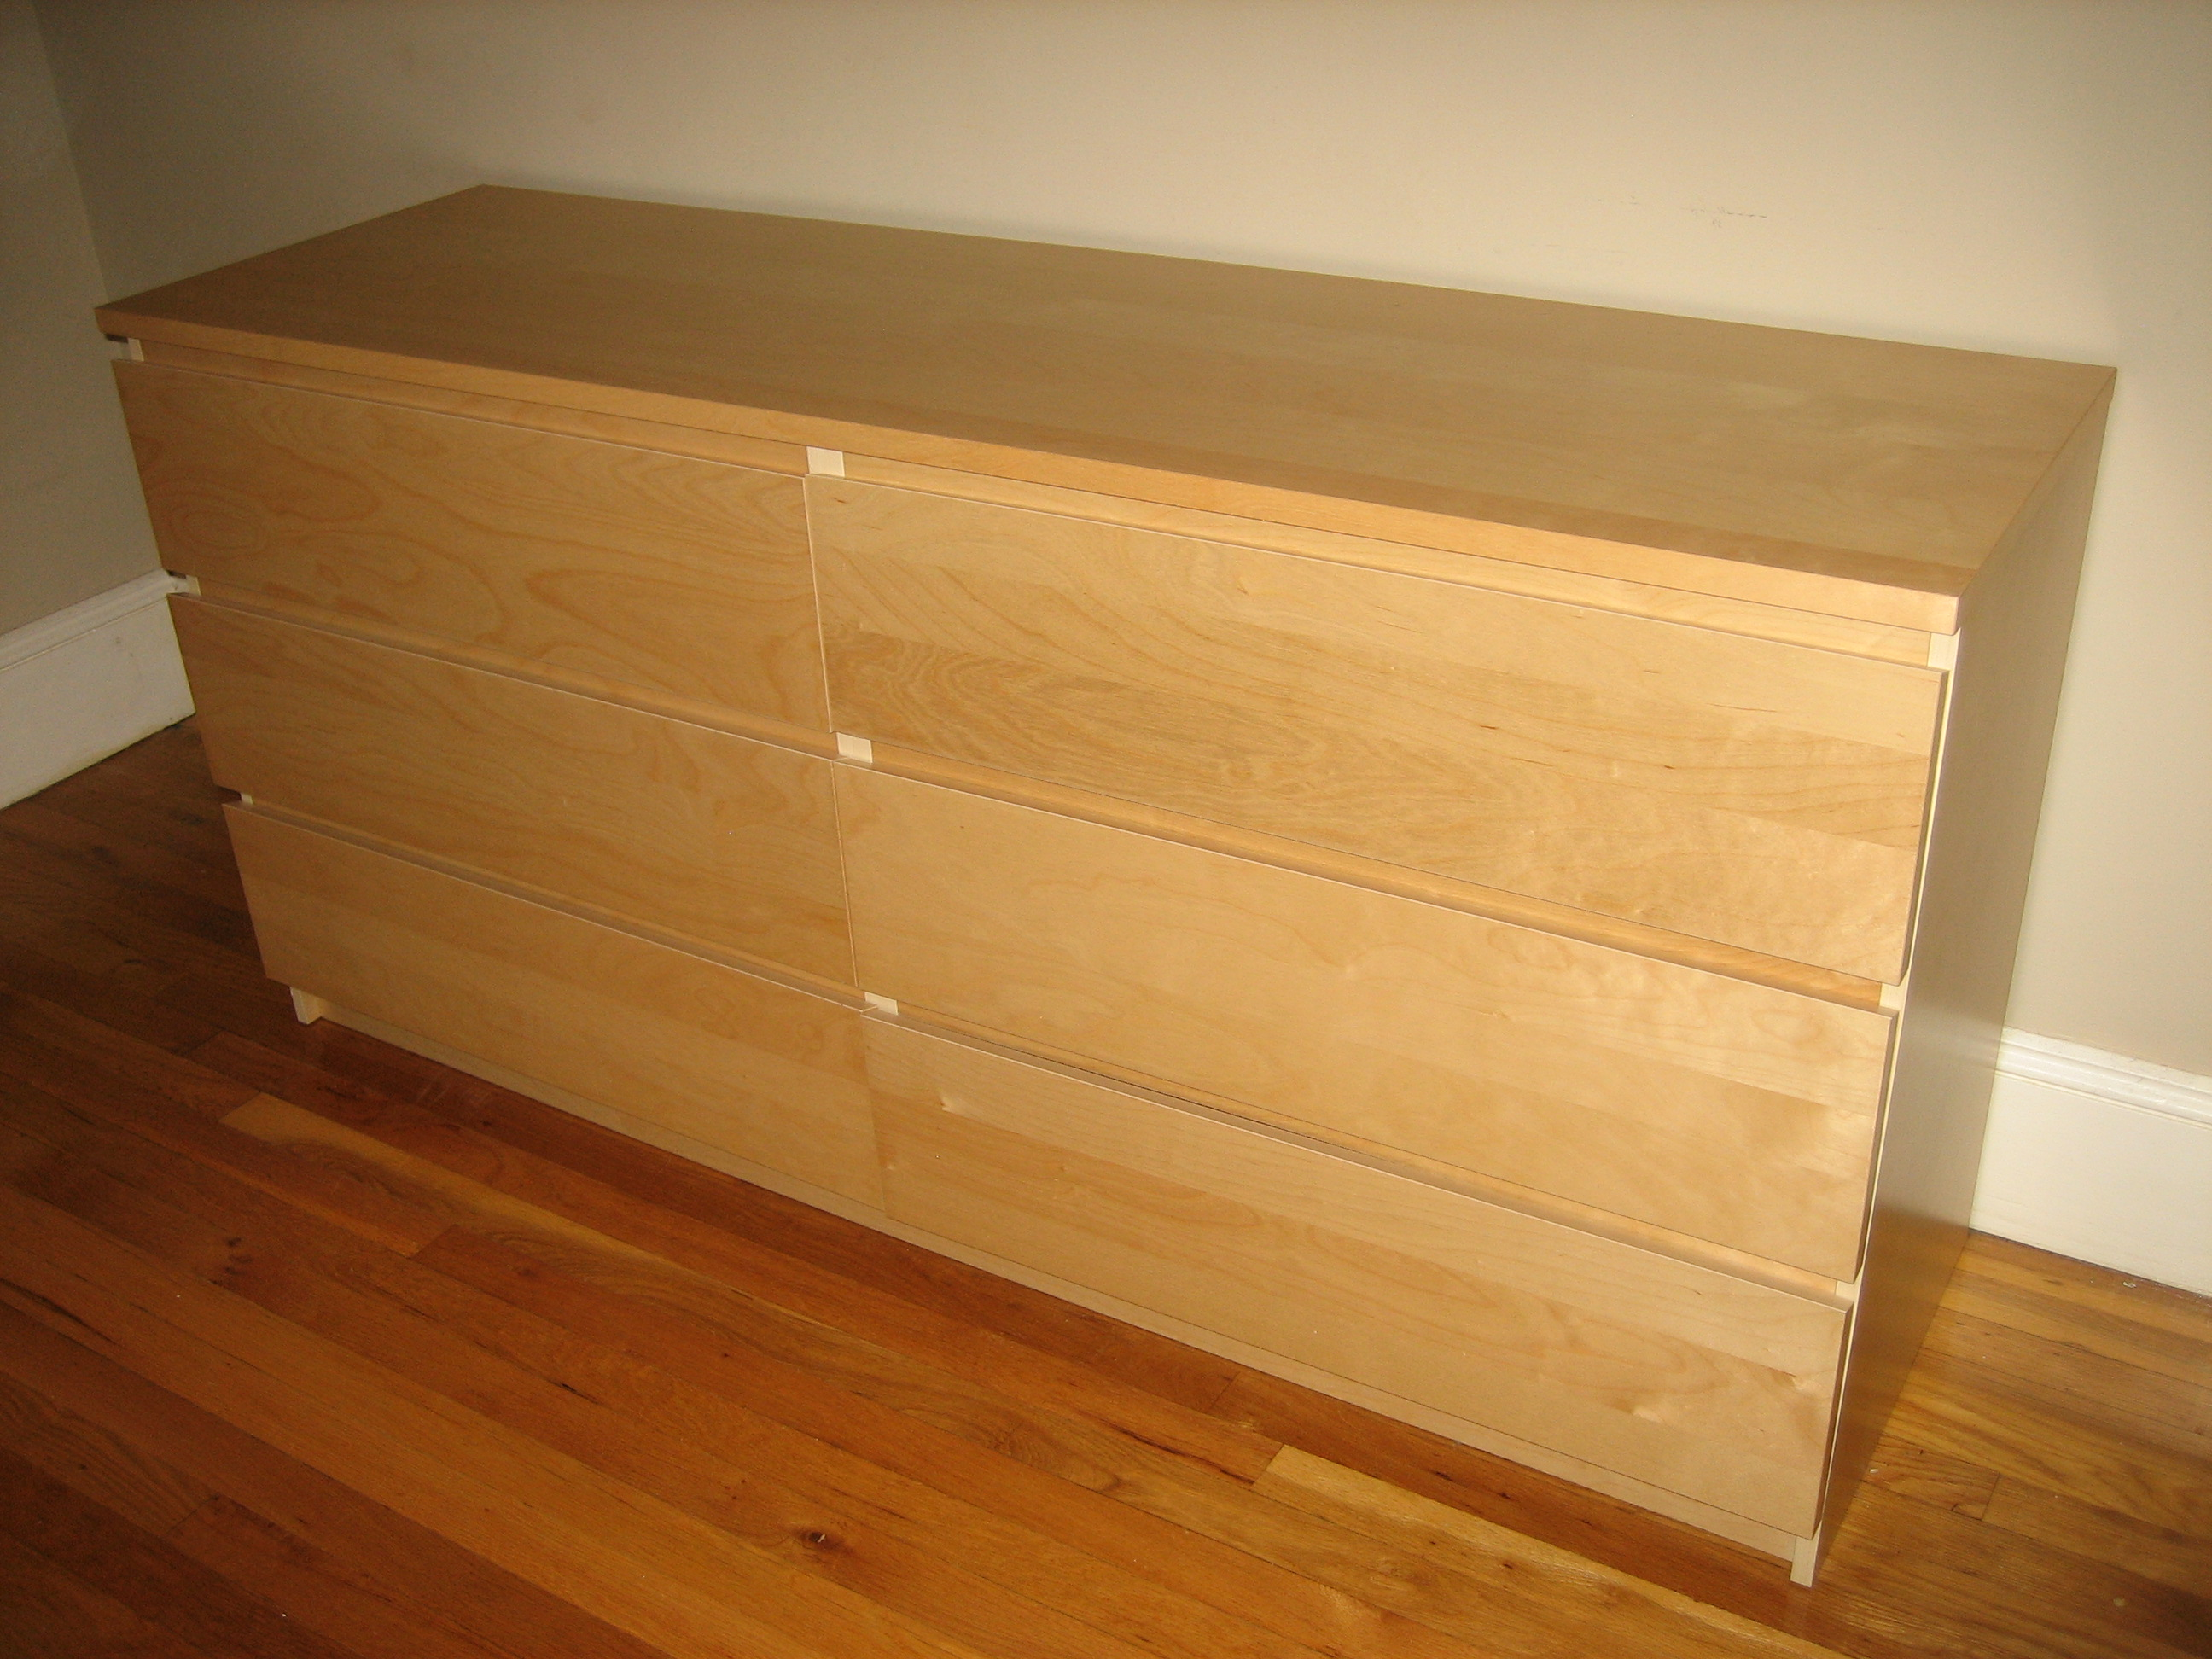 Ikea Hochstuhl Antilop Bis Wieviel Kg ~ Furniture IKEA also IKEA Malm 3 Drawer White Dresser additionally IKEA